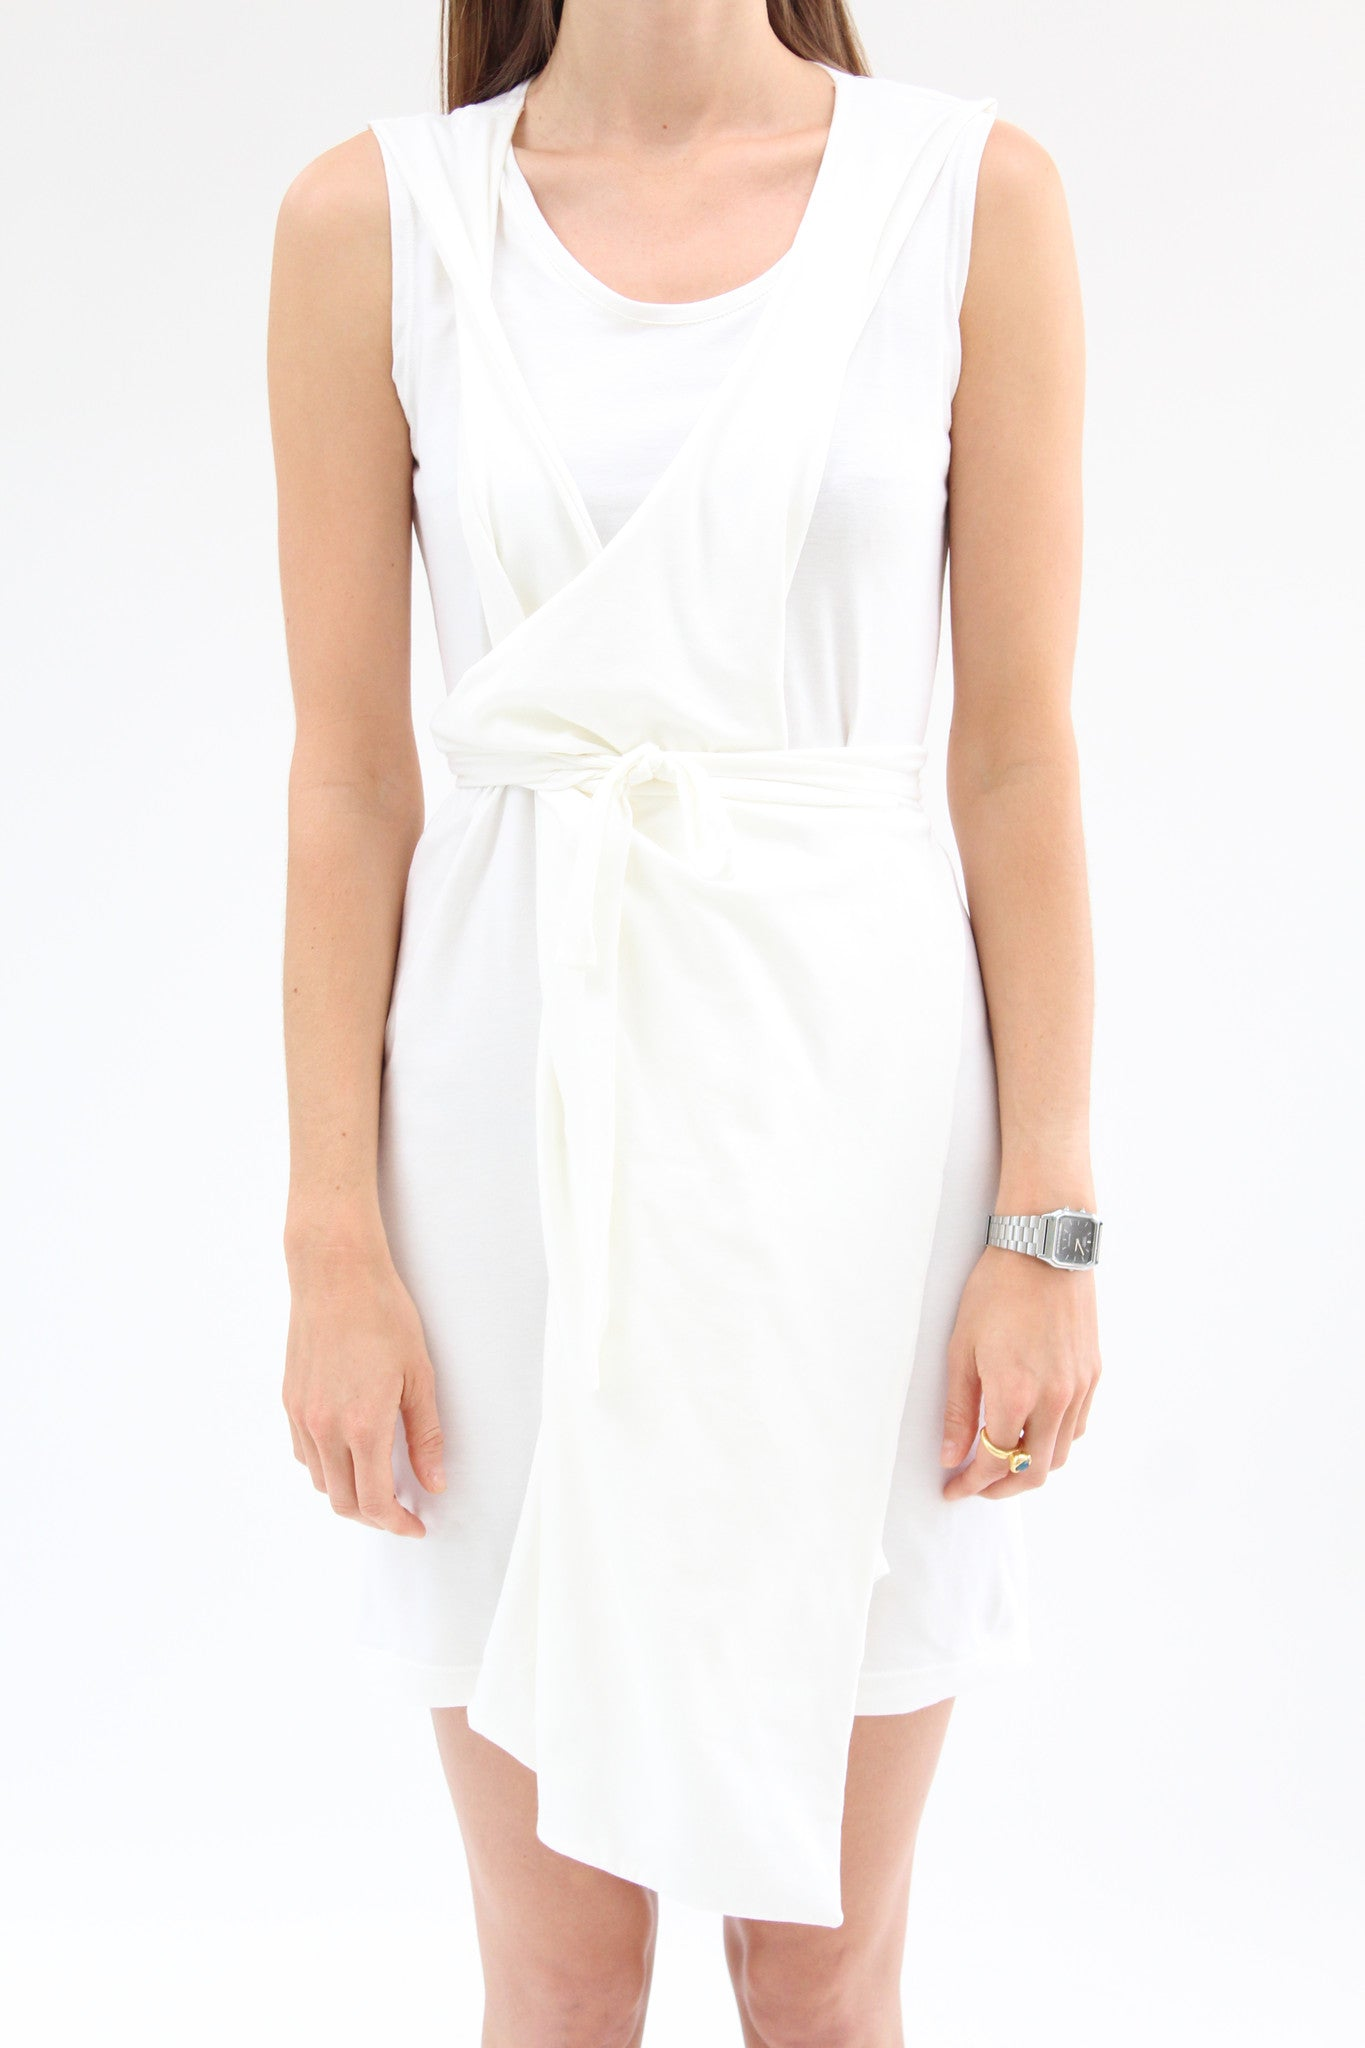 Lina Rennell Criss Cross Jersey Wrap Dress White / Beklina